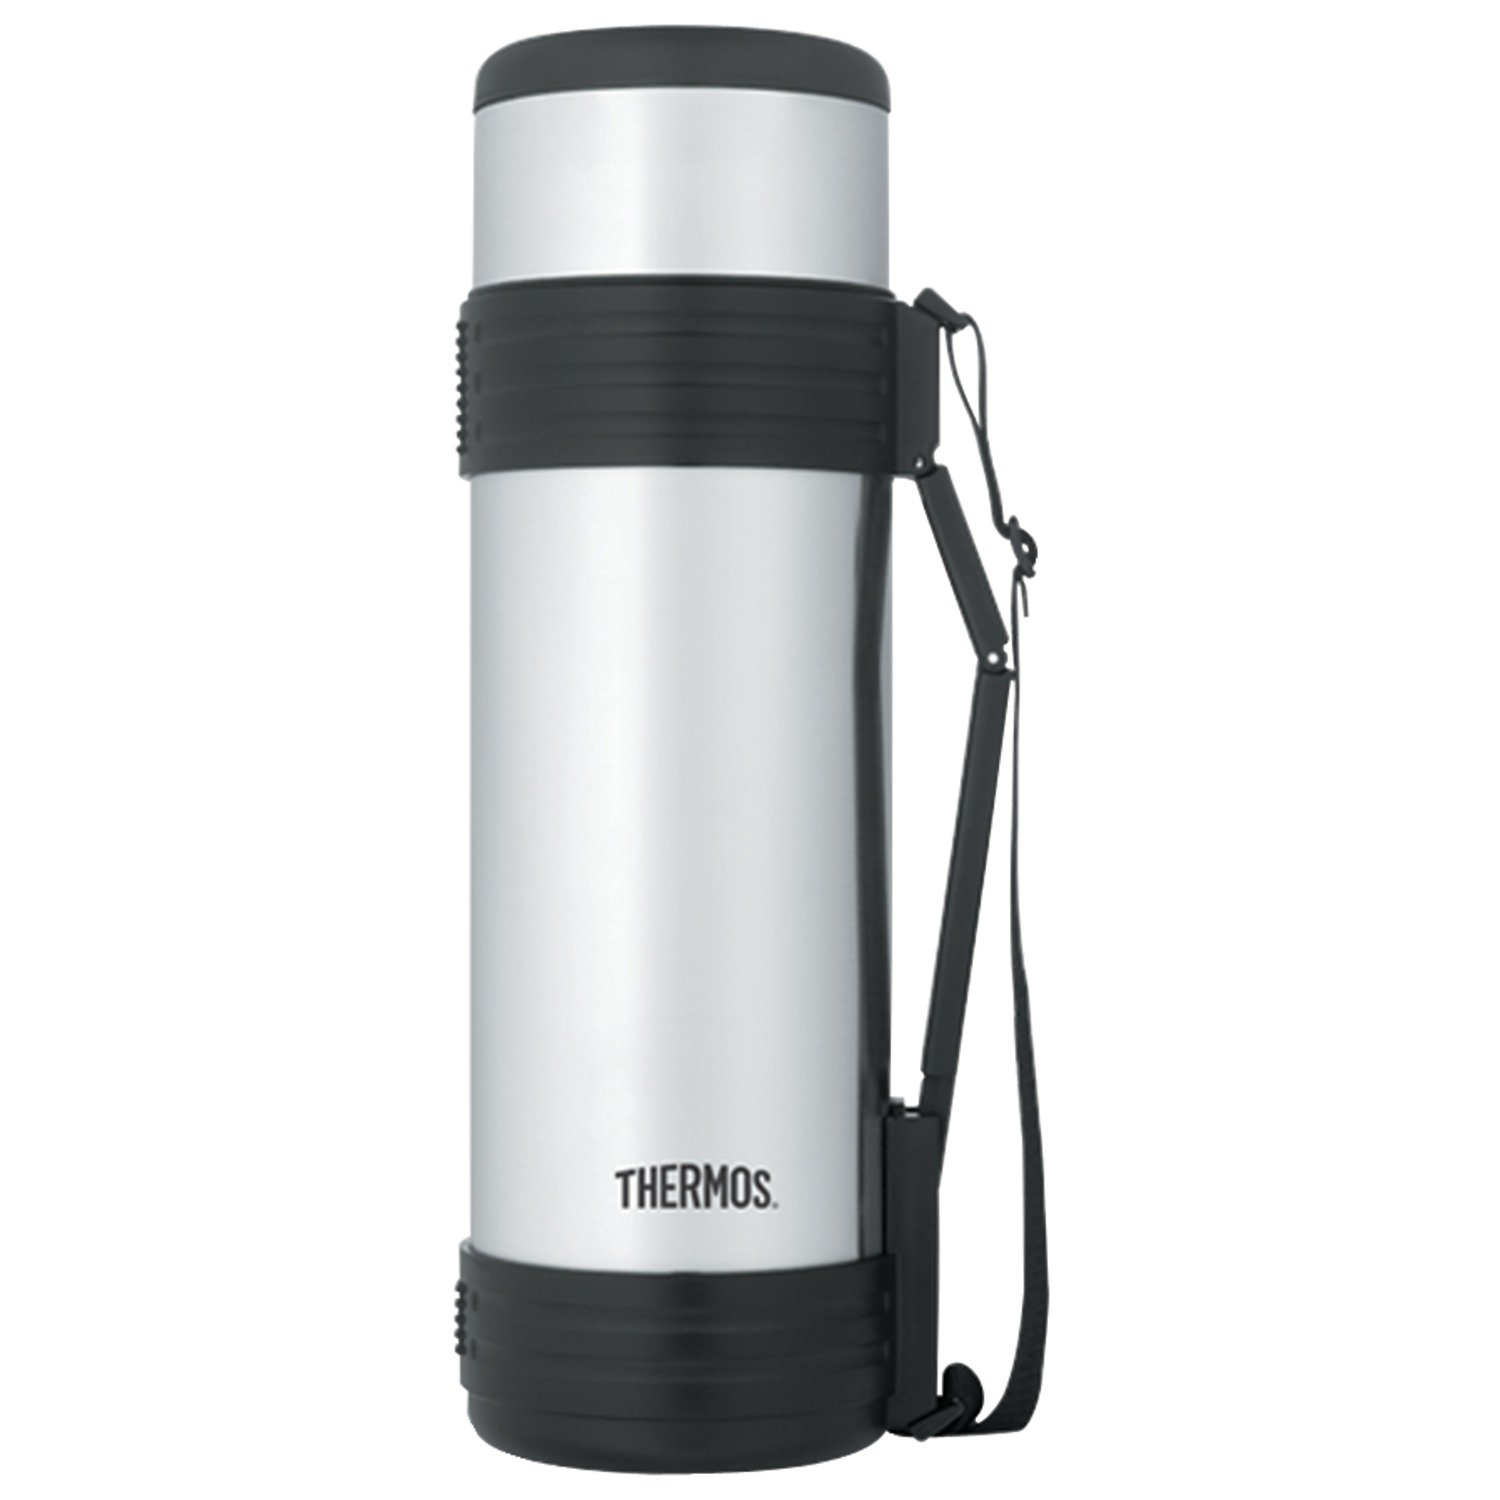 Linda Joy and the thermos bottle